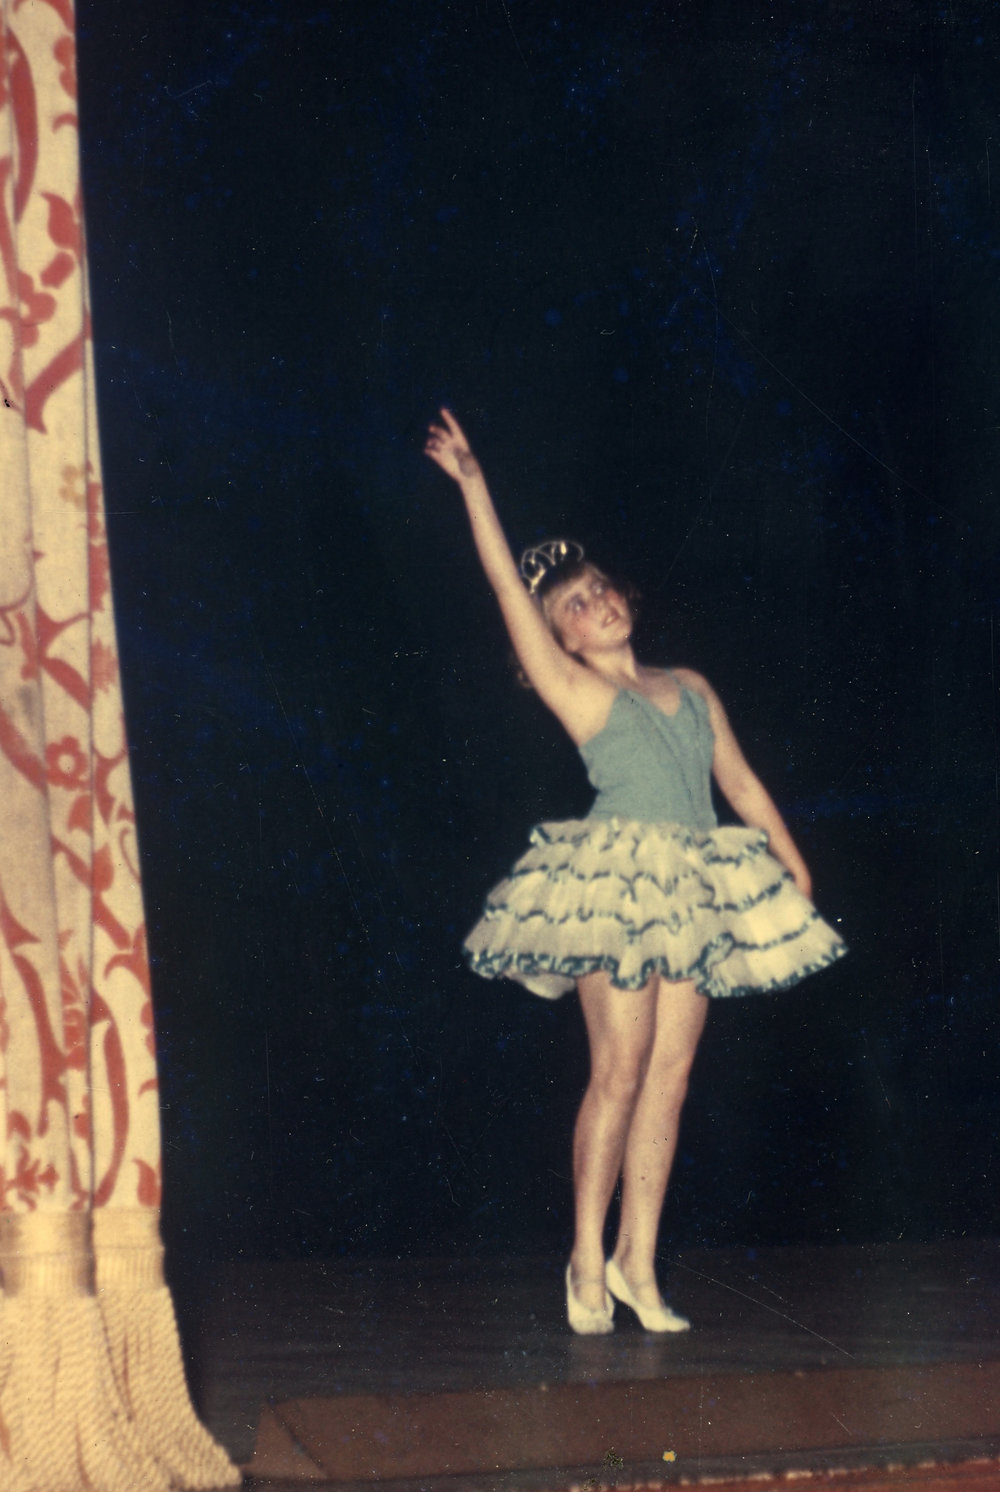 My favorite ballet costume -- rows of ruffles edged with satin ribbon and a sparkly tiara.  I felt like a princess!